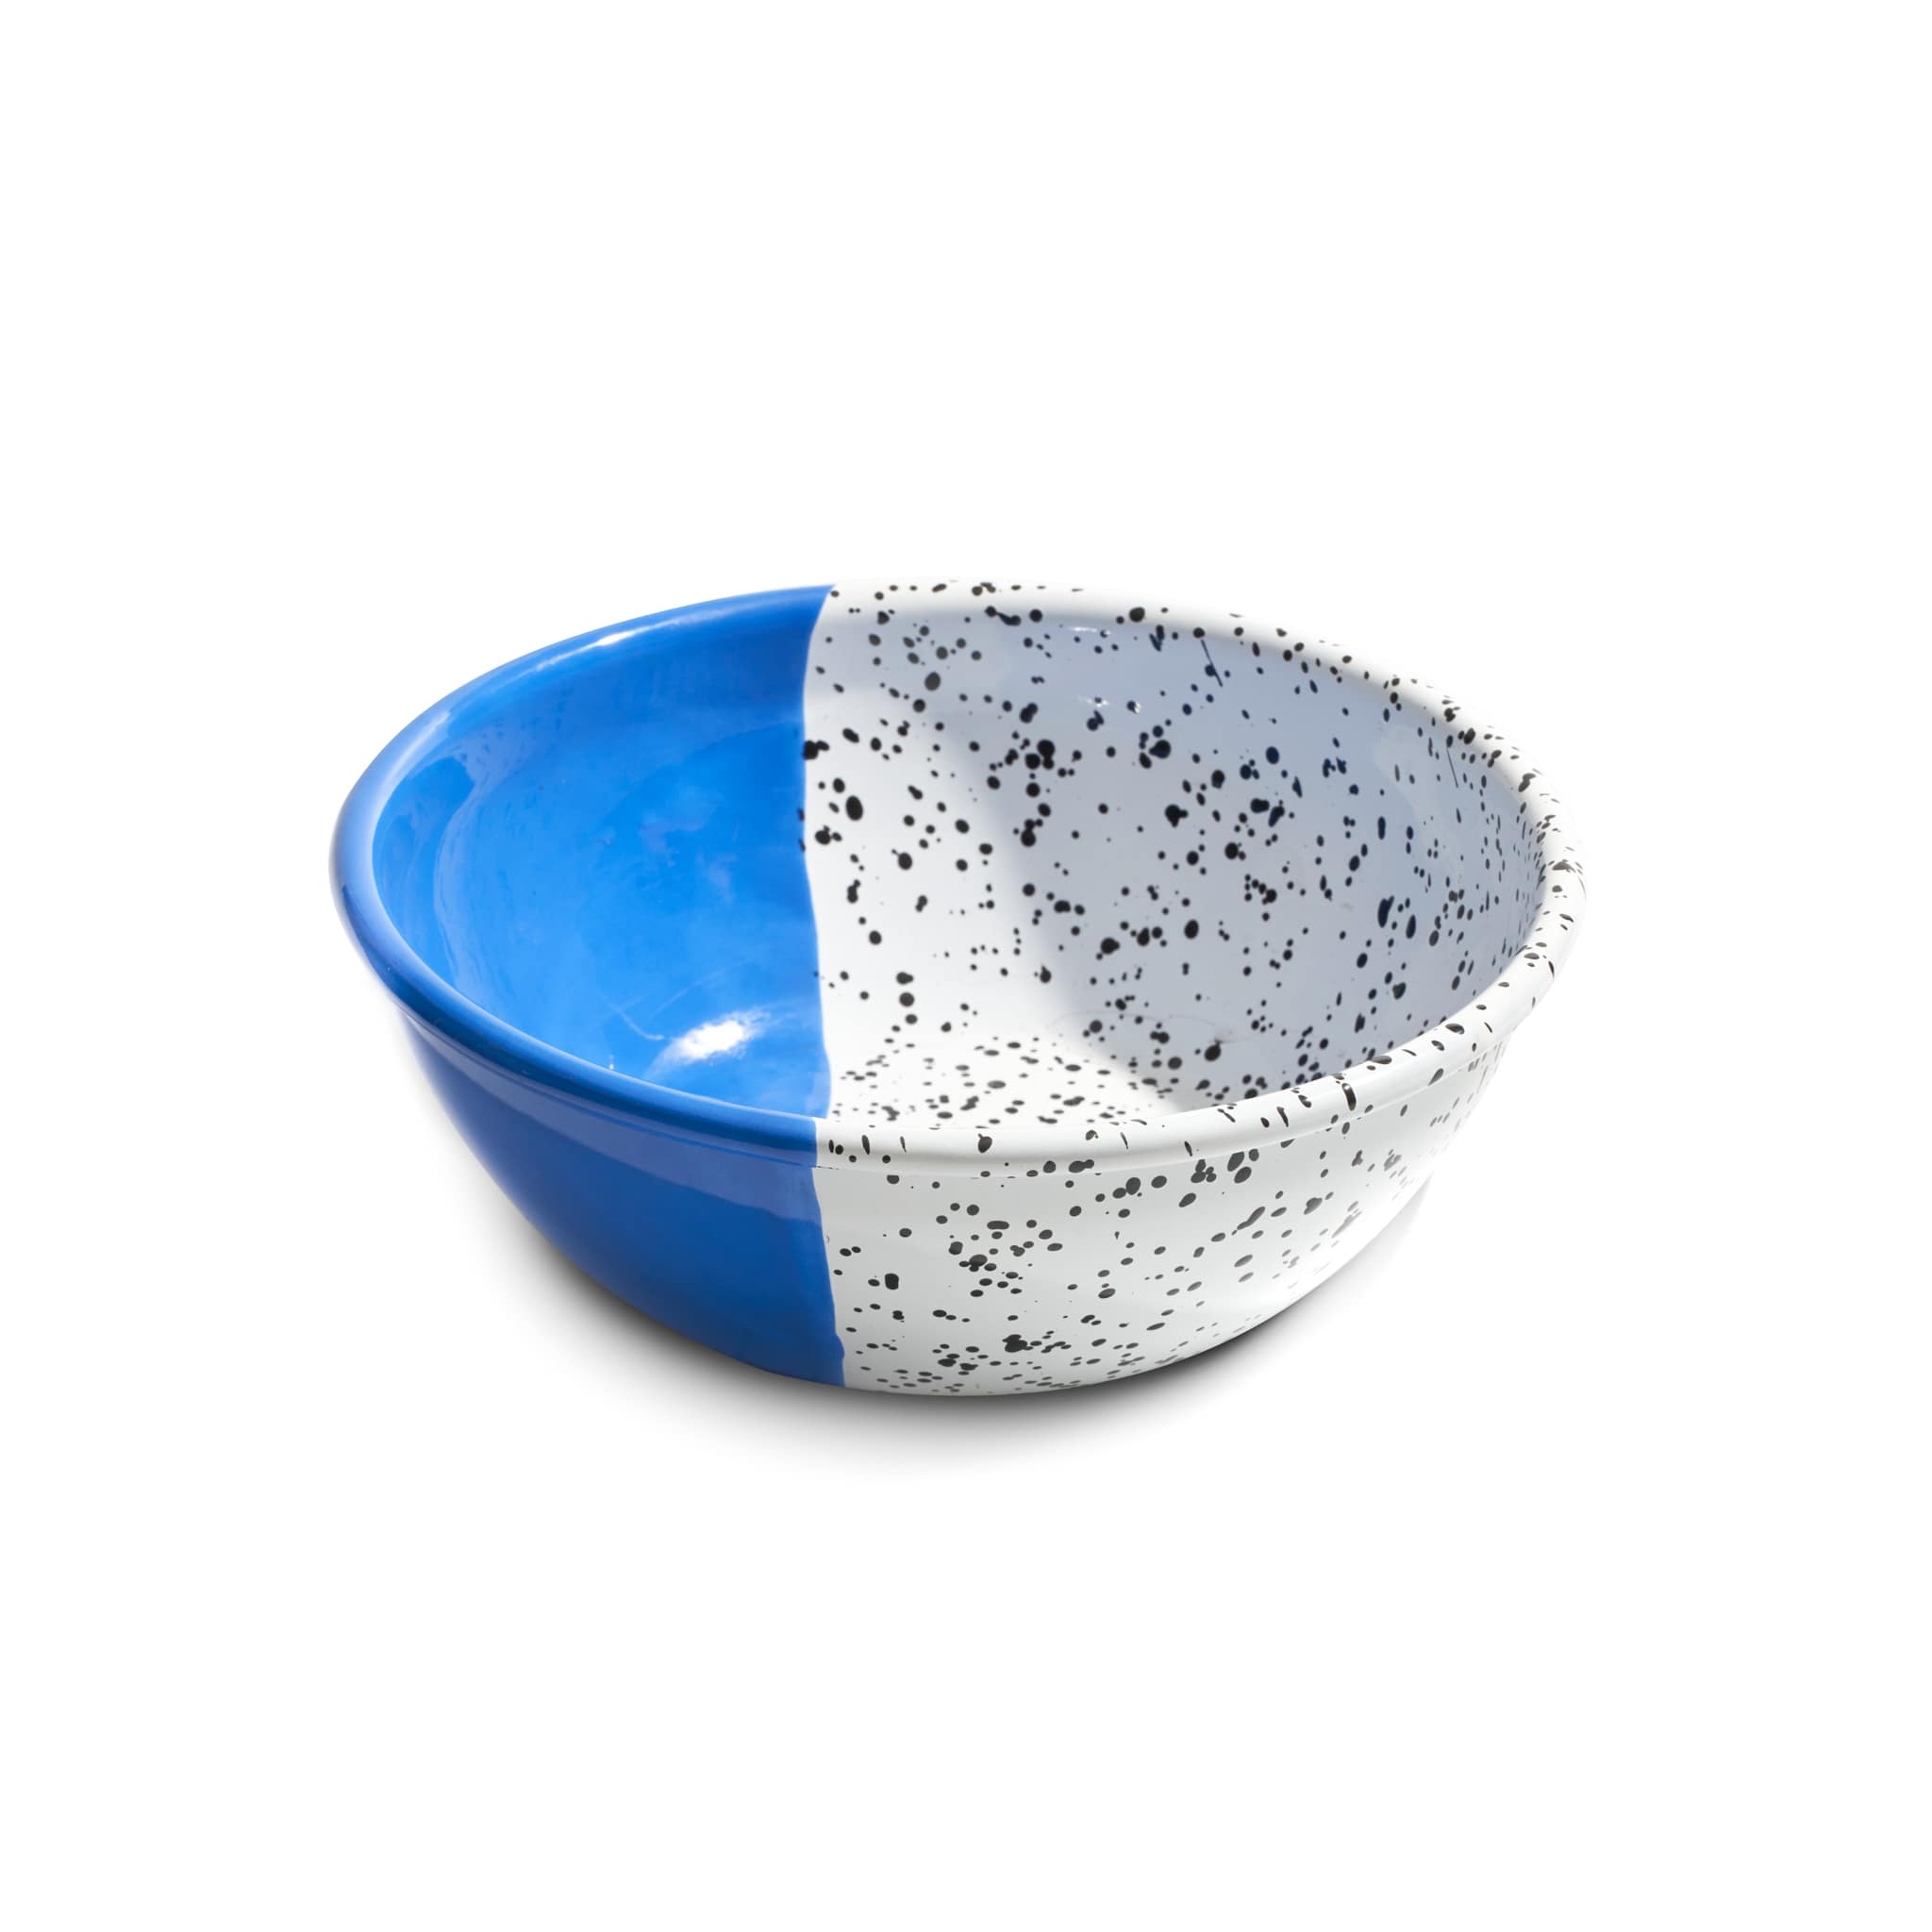 Colour Pop Enamel Salad Bowl Cobalt Blue 26cm